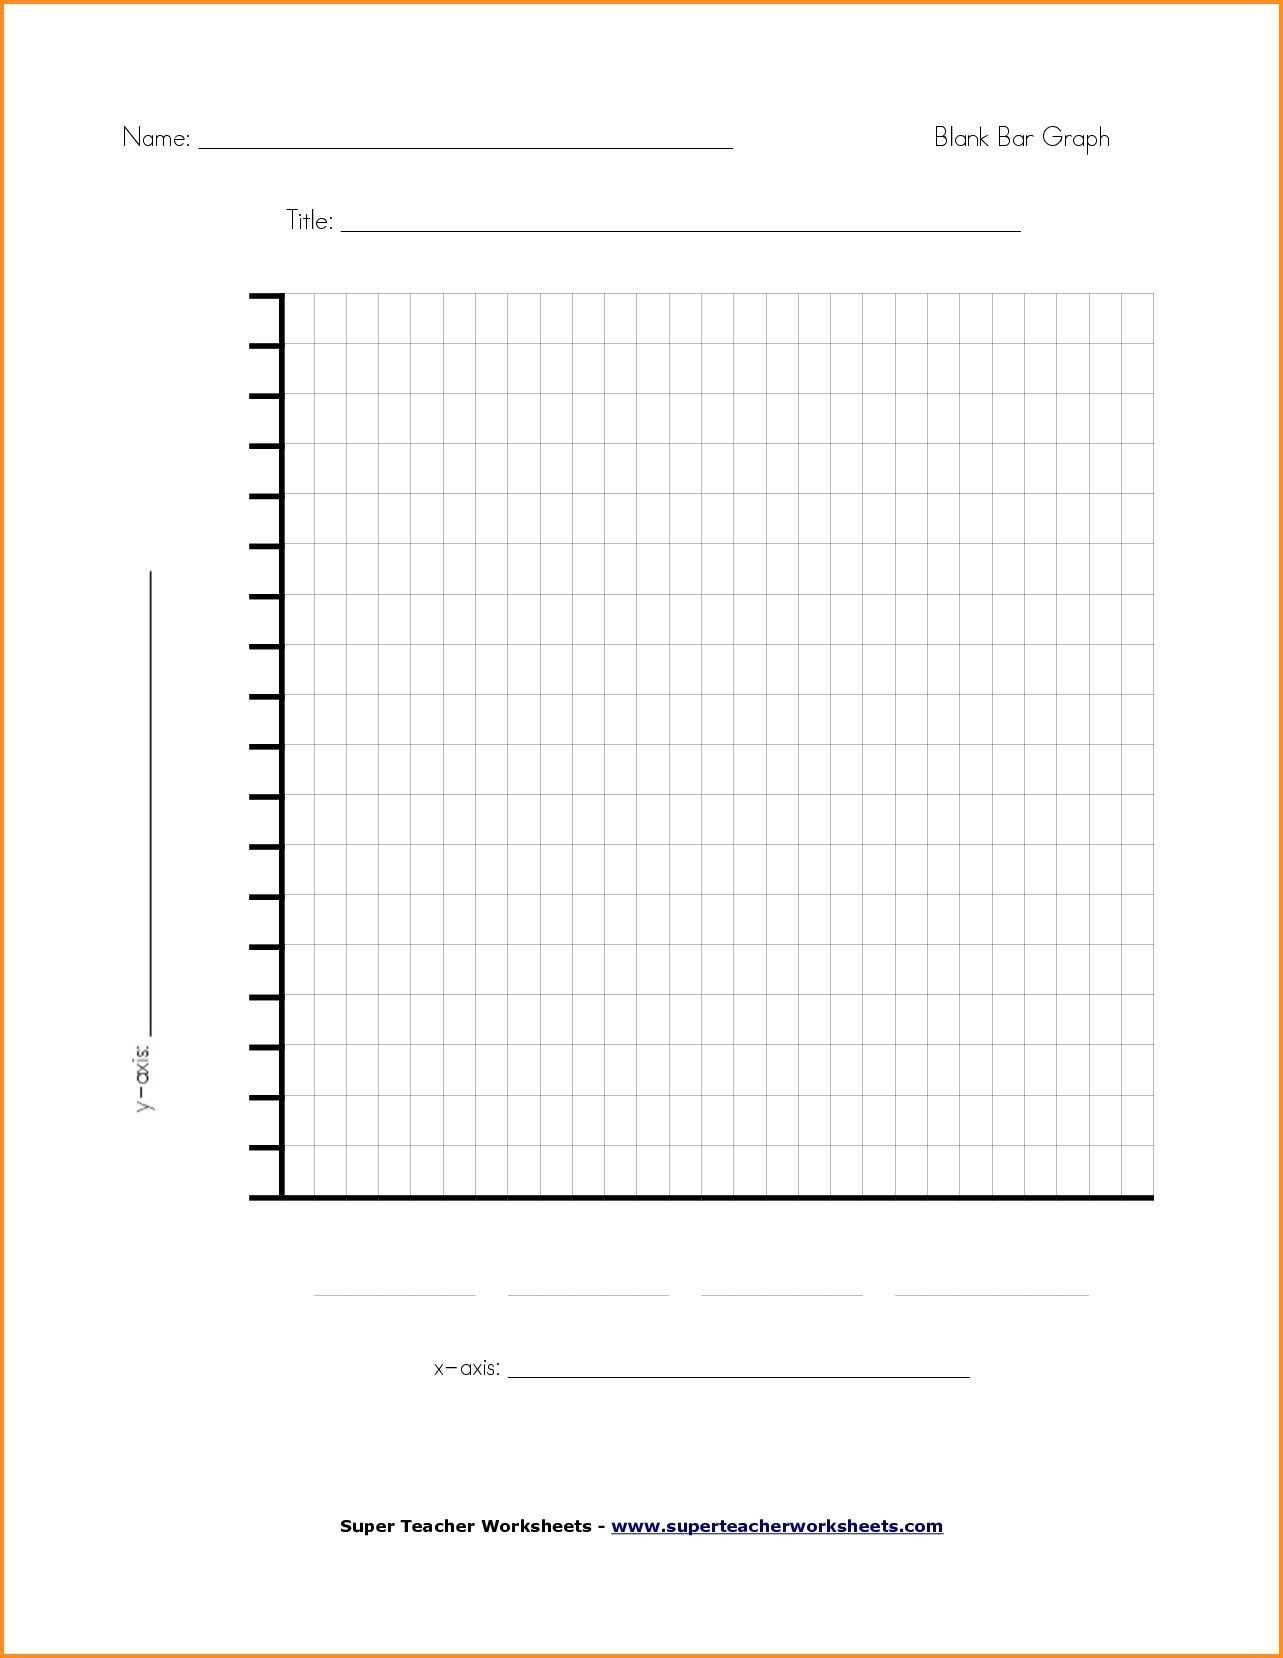 Line Graphs Worksheets 5th Grade Blank Chart Template for Teachers